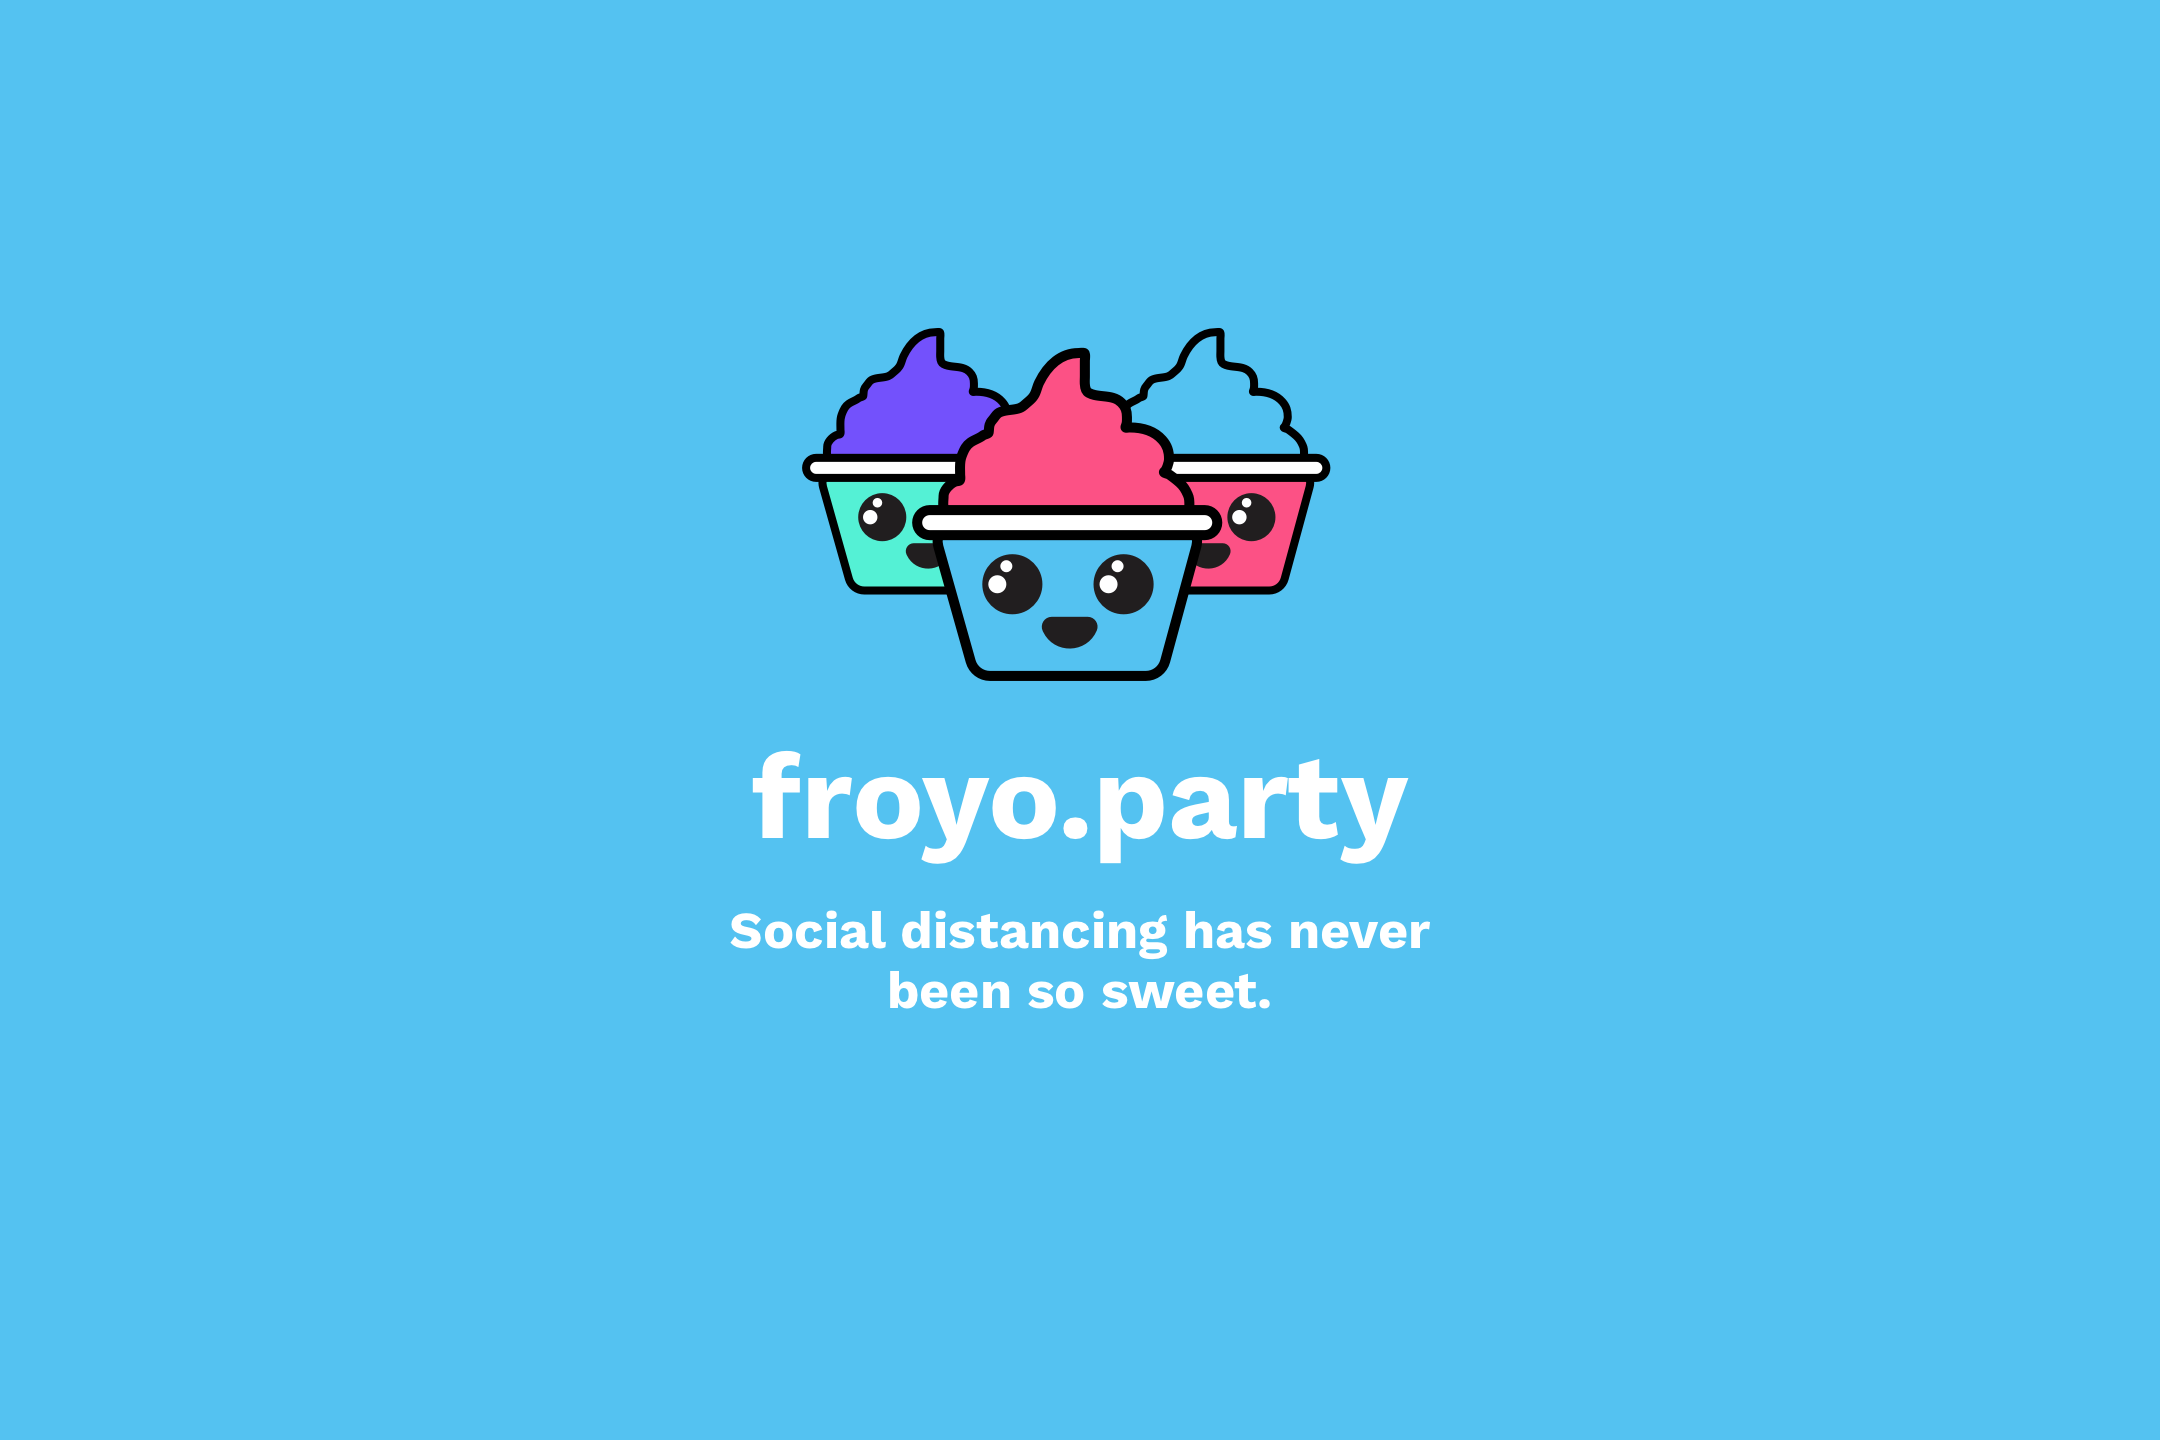 Froyo Party